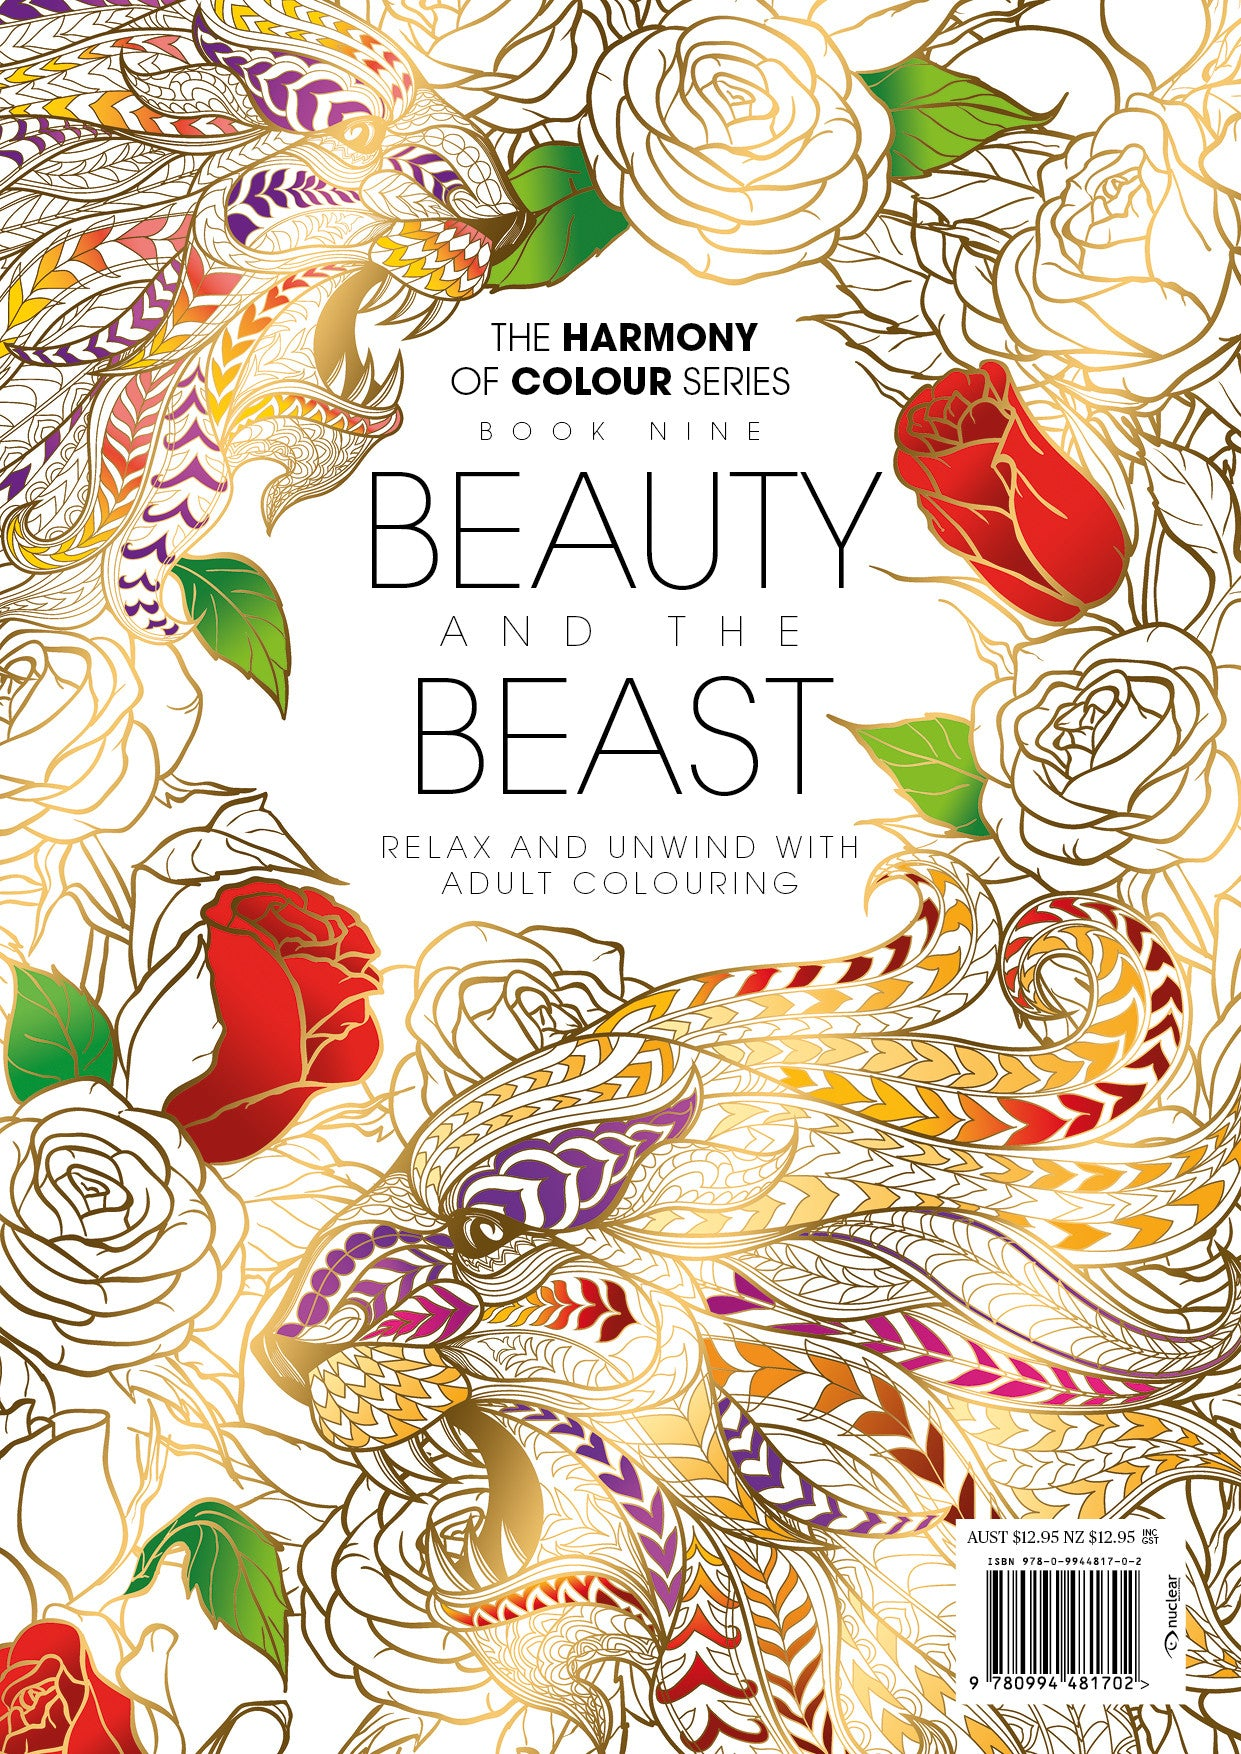 Harmony Of Colour Book Nine Beauty And The Beast PRINT EDITION SOLD